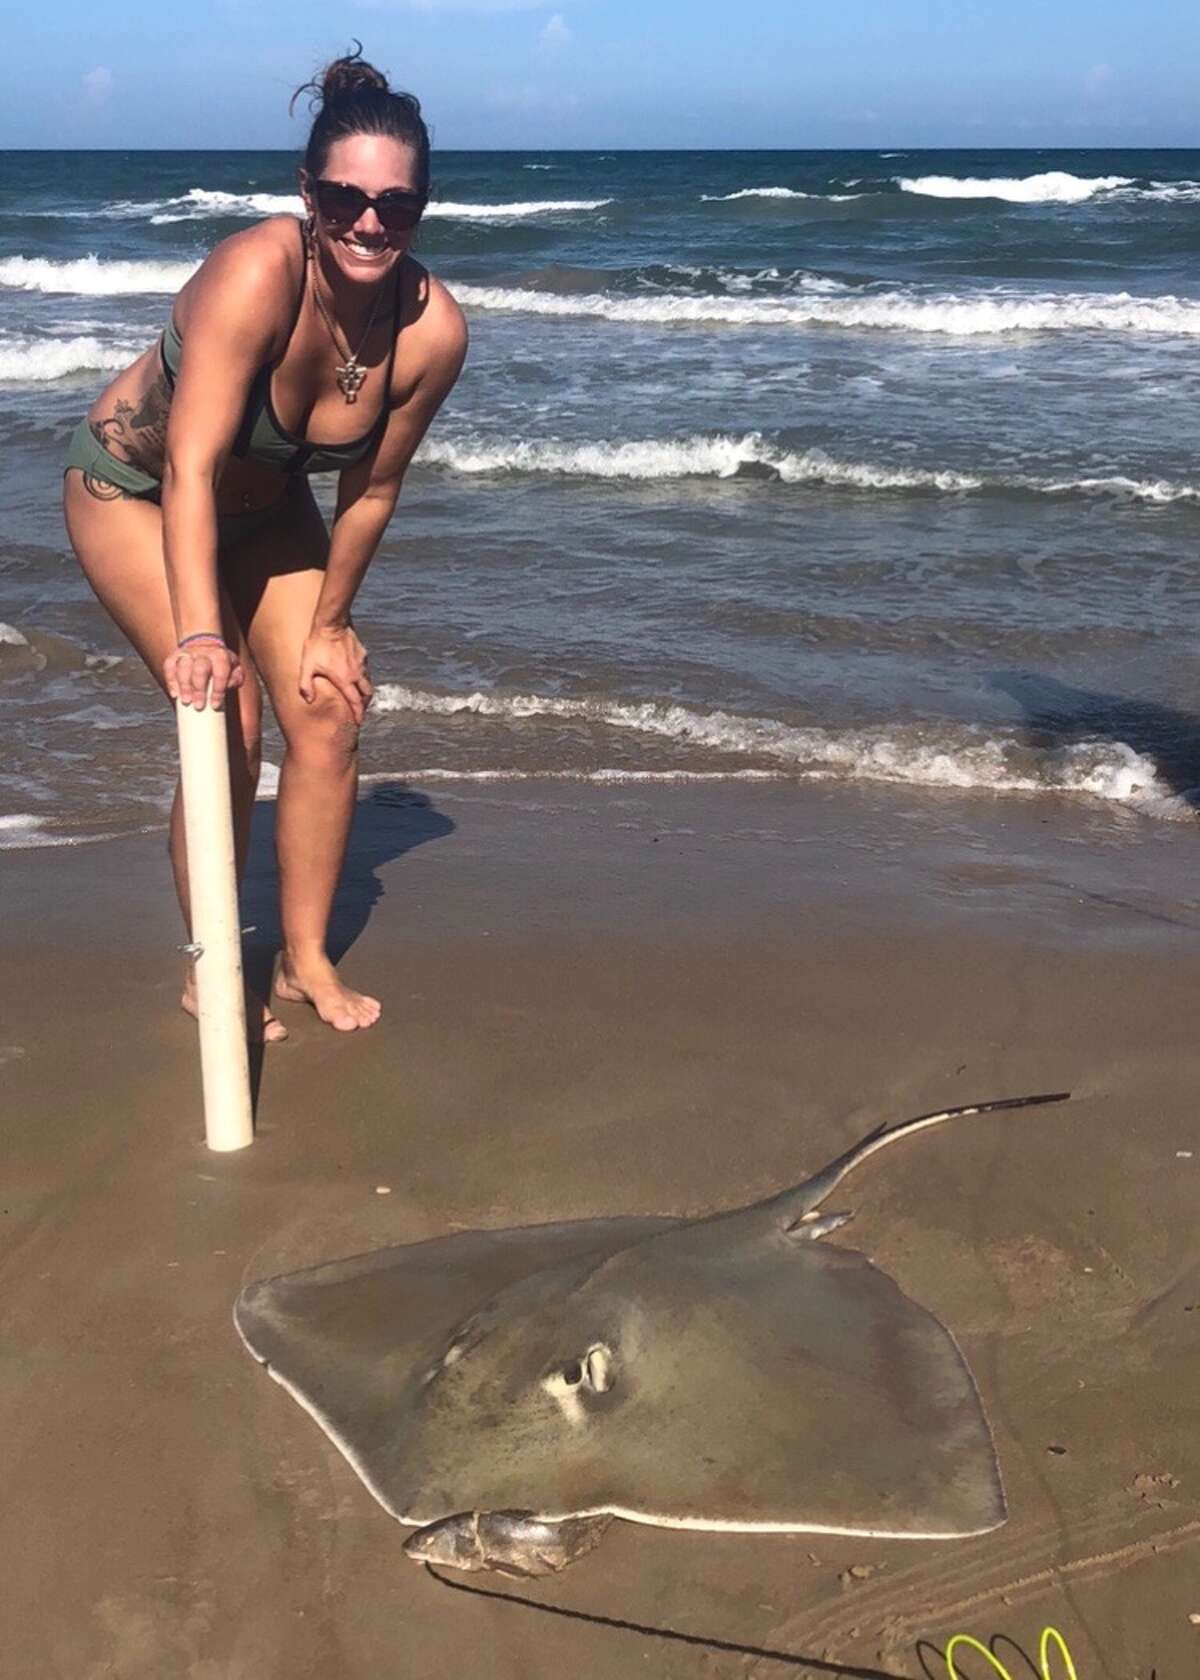 Amber Rieder, of Sinton, caught a large stingray the last weekend of August. The next weekend, she and her husband used the stingray as bait to hook two large Tiger sharks.